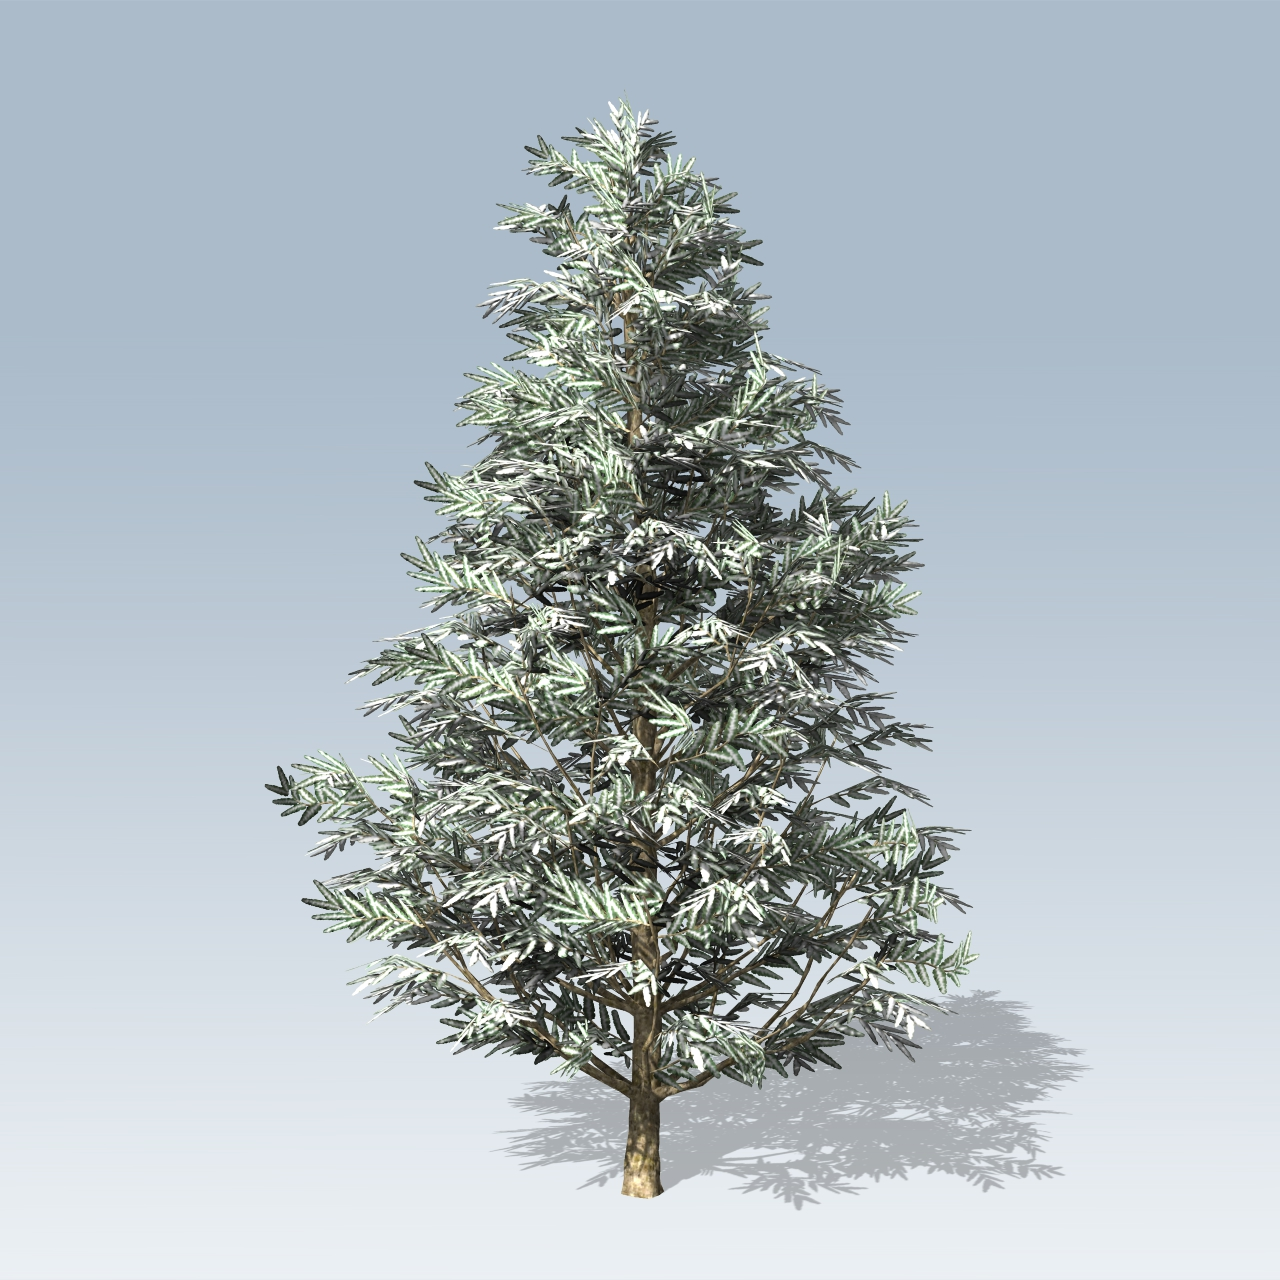 fraser fir Buy fraser fir tree seeds online free shipping on orders over $75 shop for over 500 species of tree and shrub seeds for sale click or call (802) 363-1582 to.